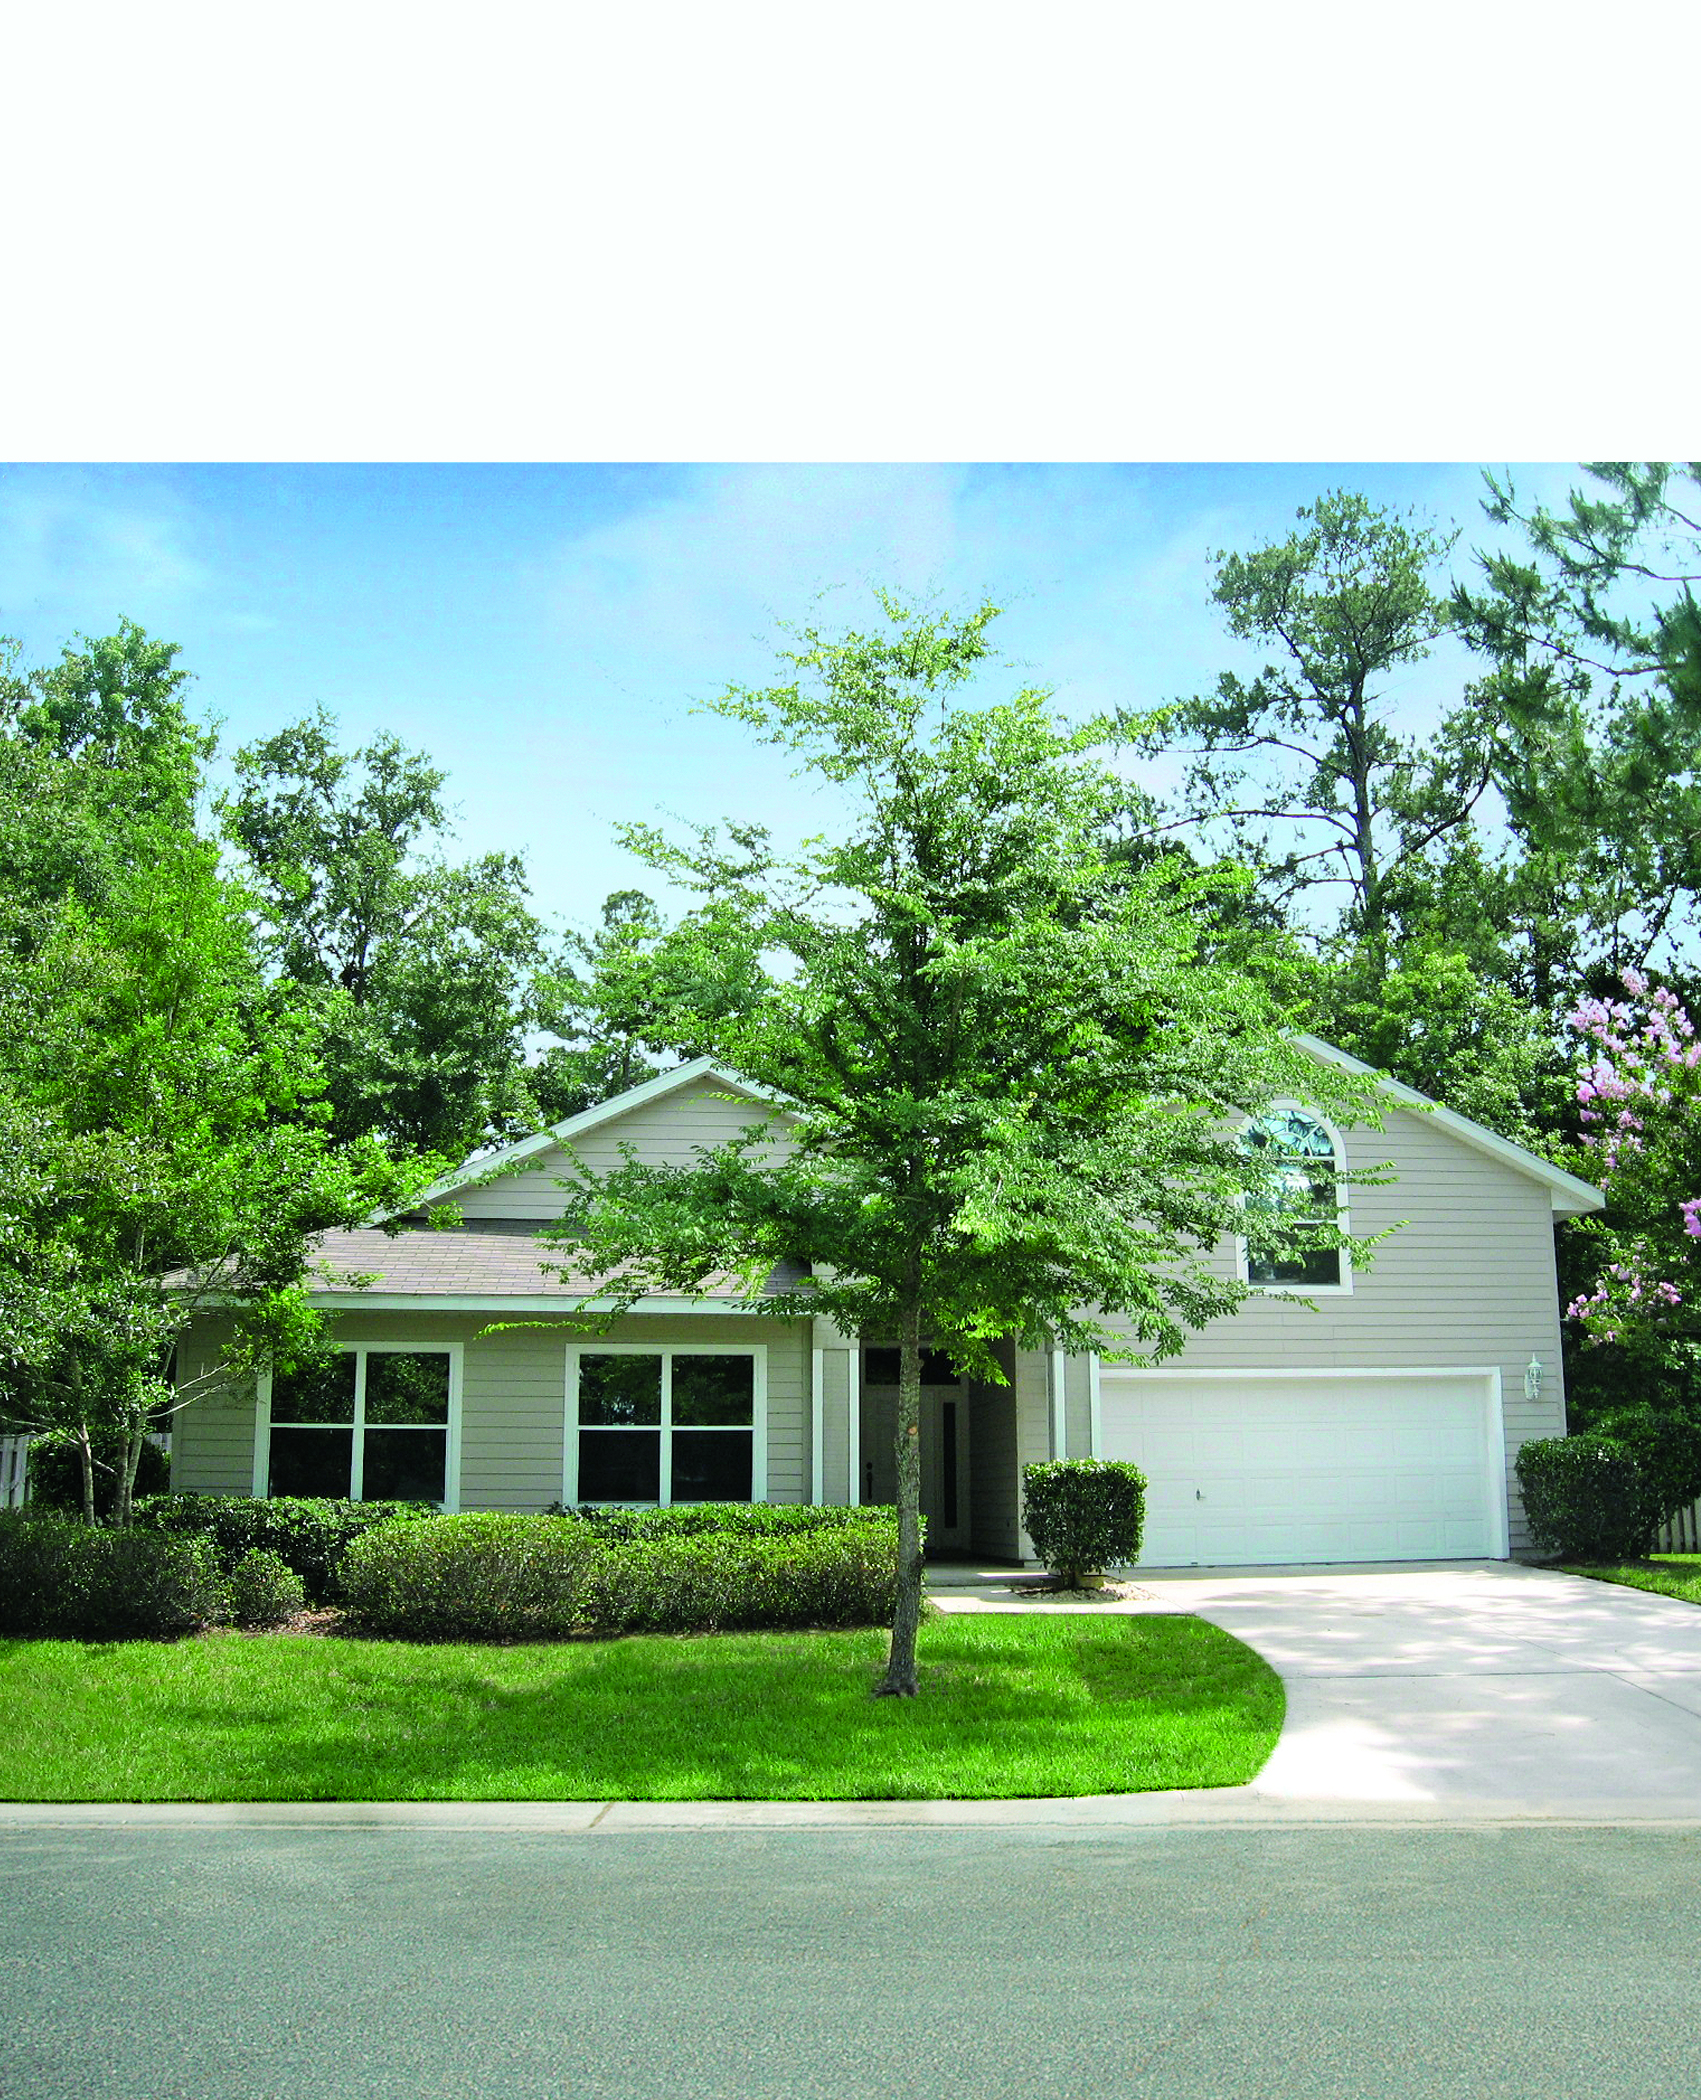 4/3 LISTING In CAPRI Neighborhood In NW Gainesville, FL